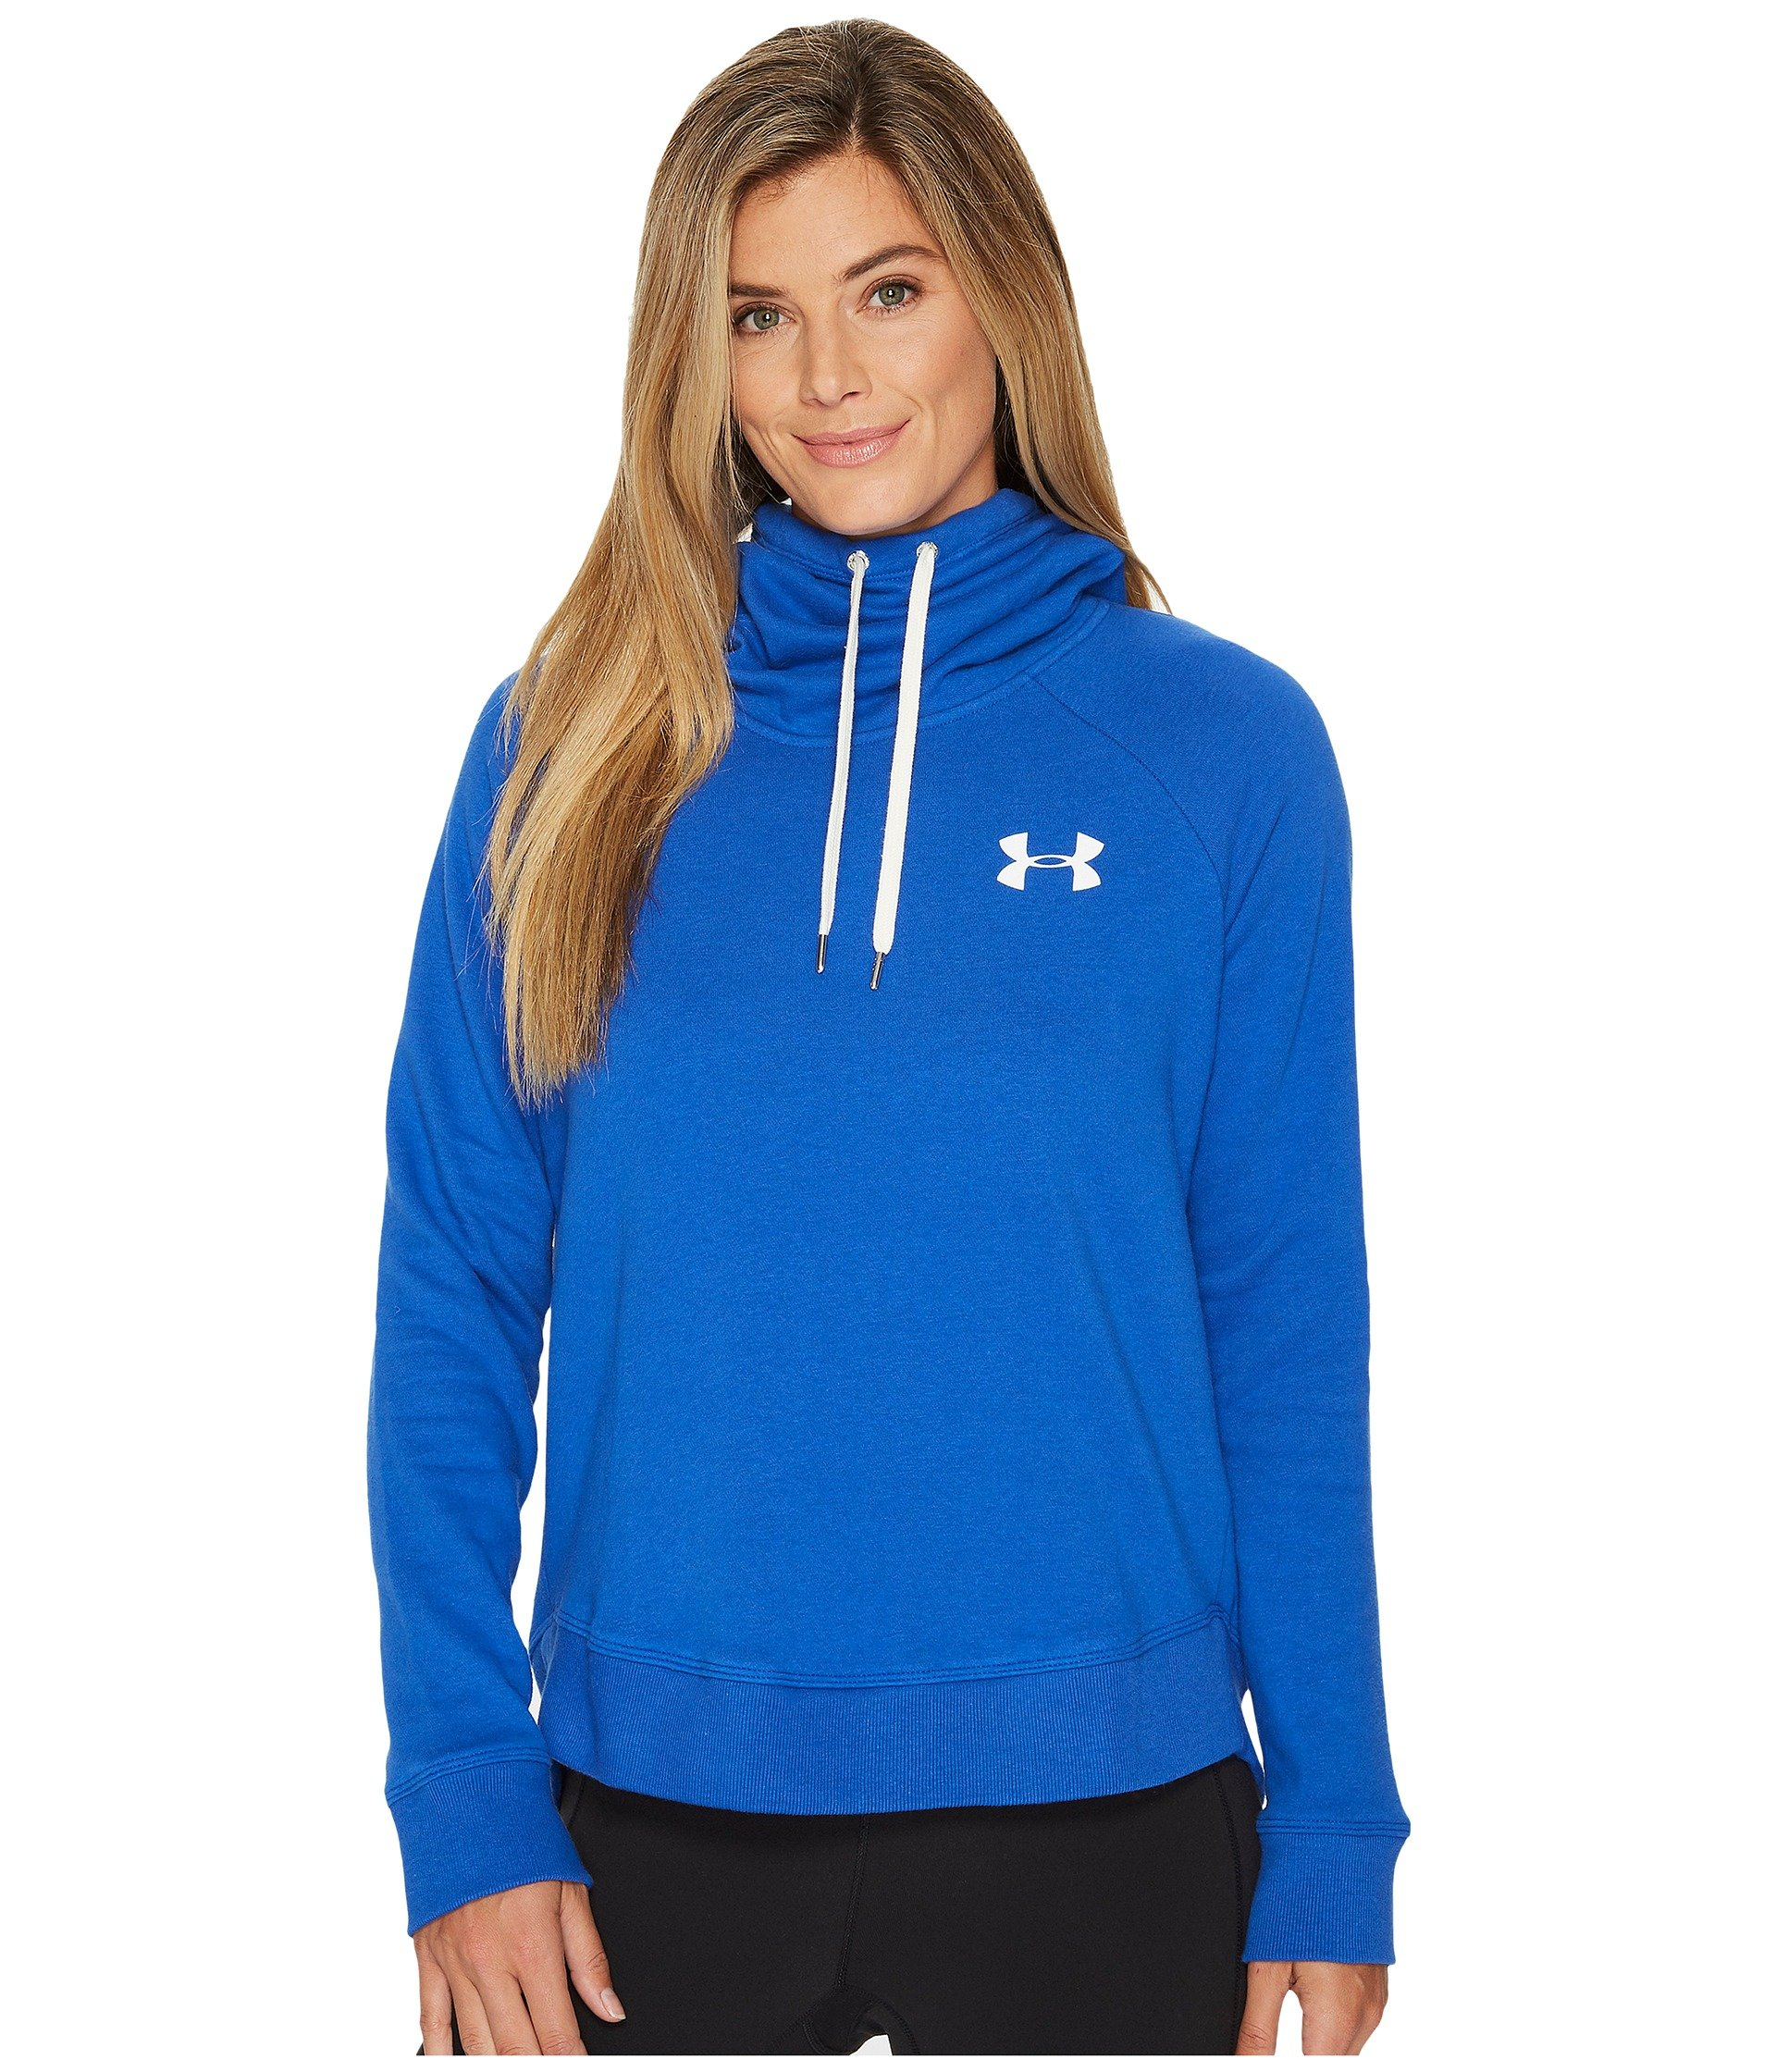 Under Armour Women's Novelty Favorite Pull Over Left Chest Jacket, Lapis Blue /White, X-Small